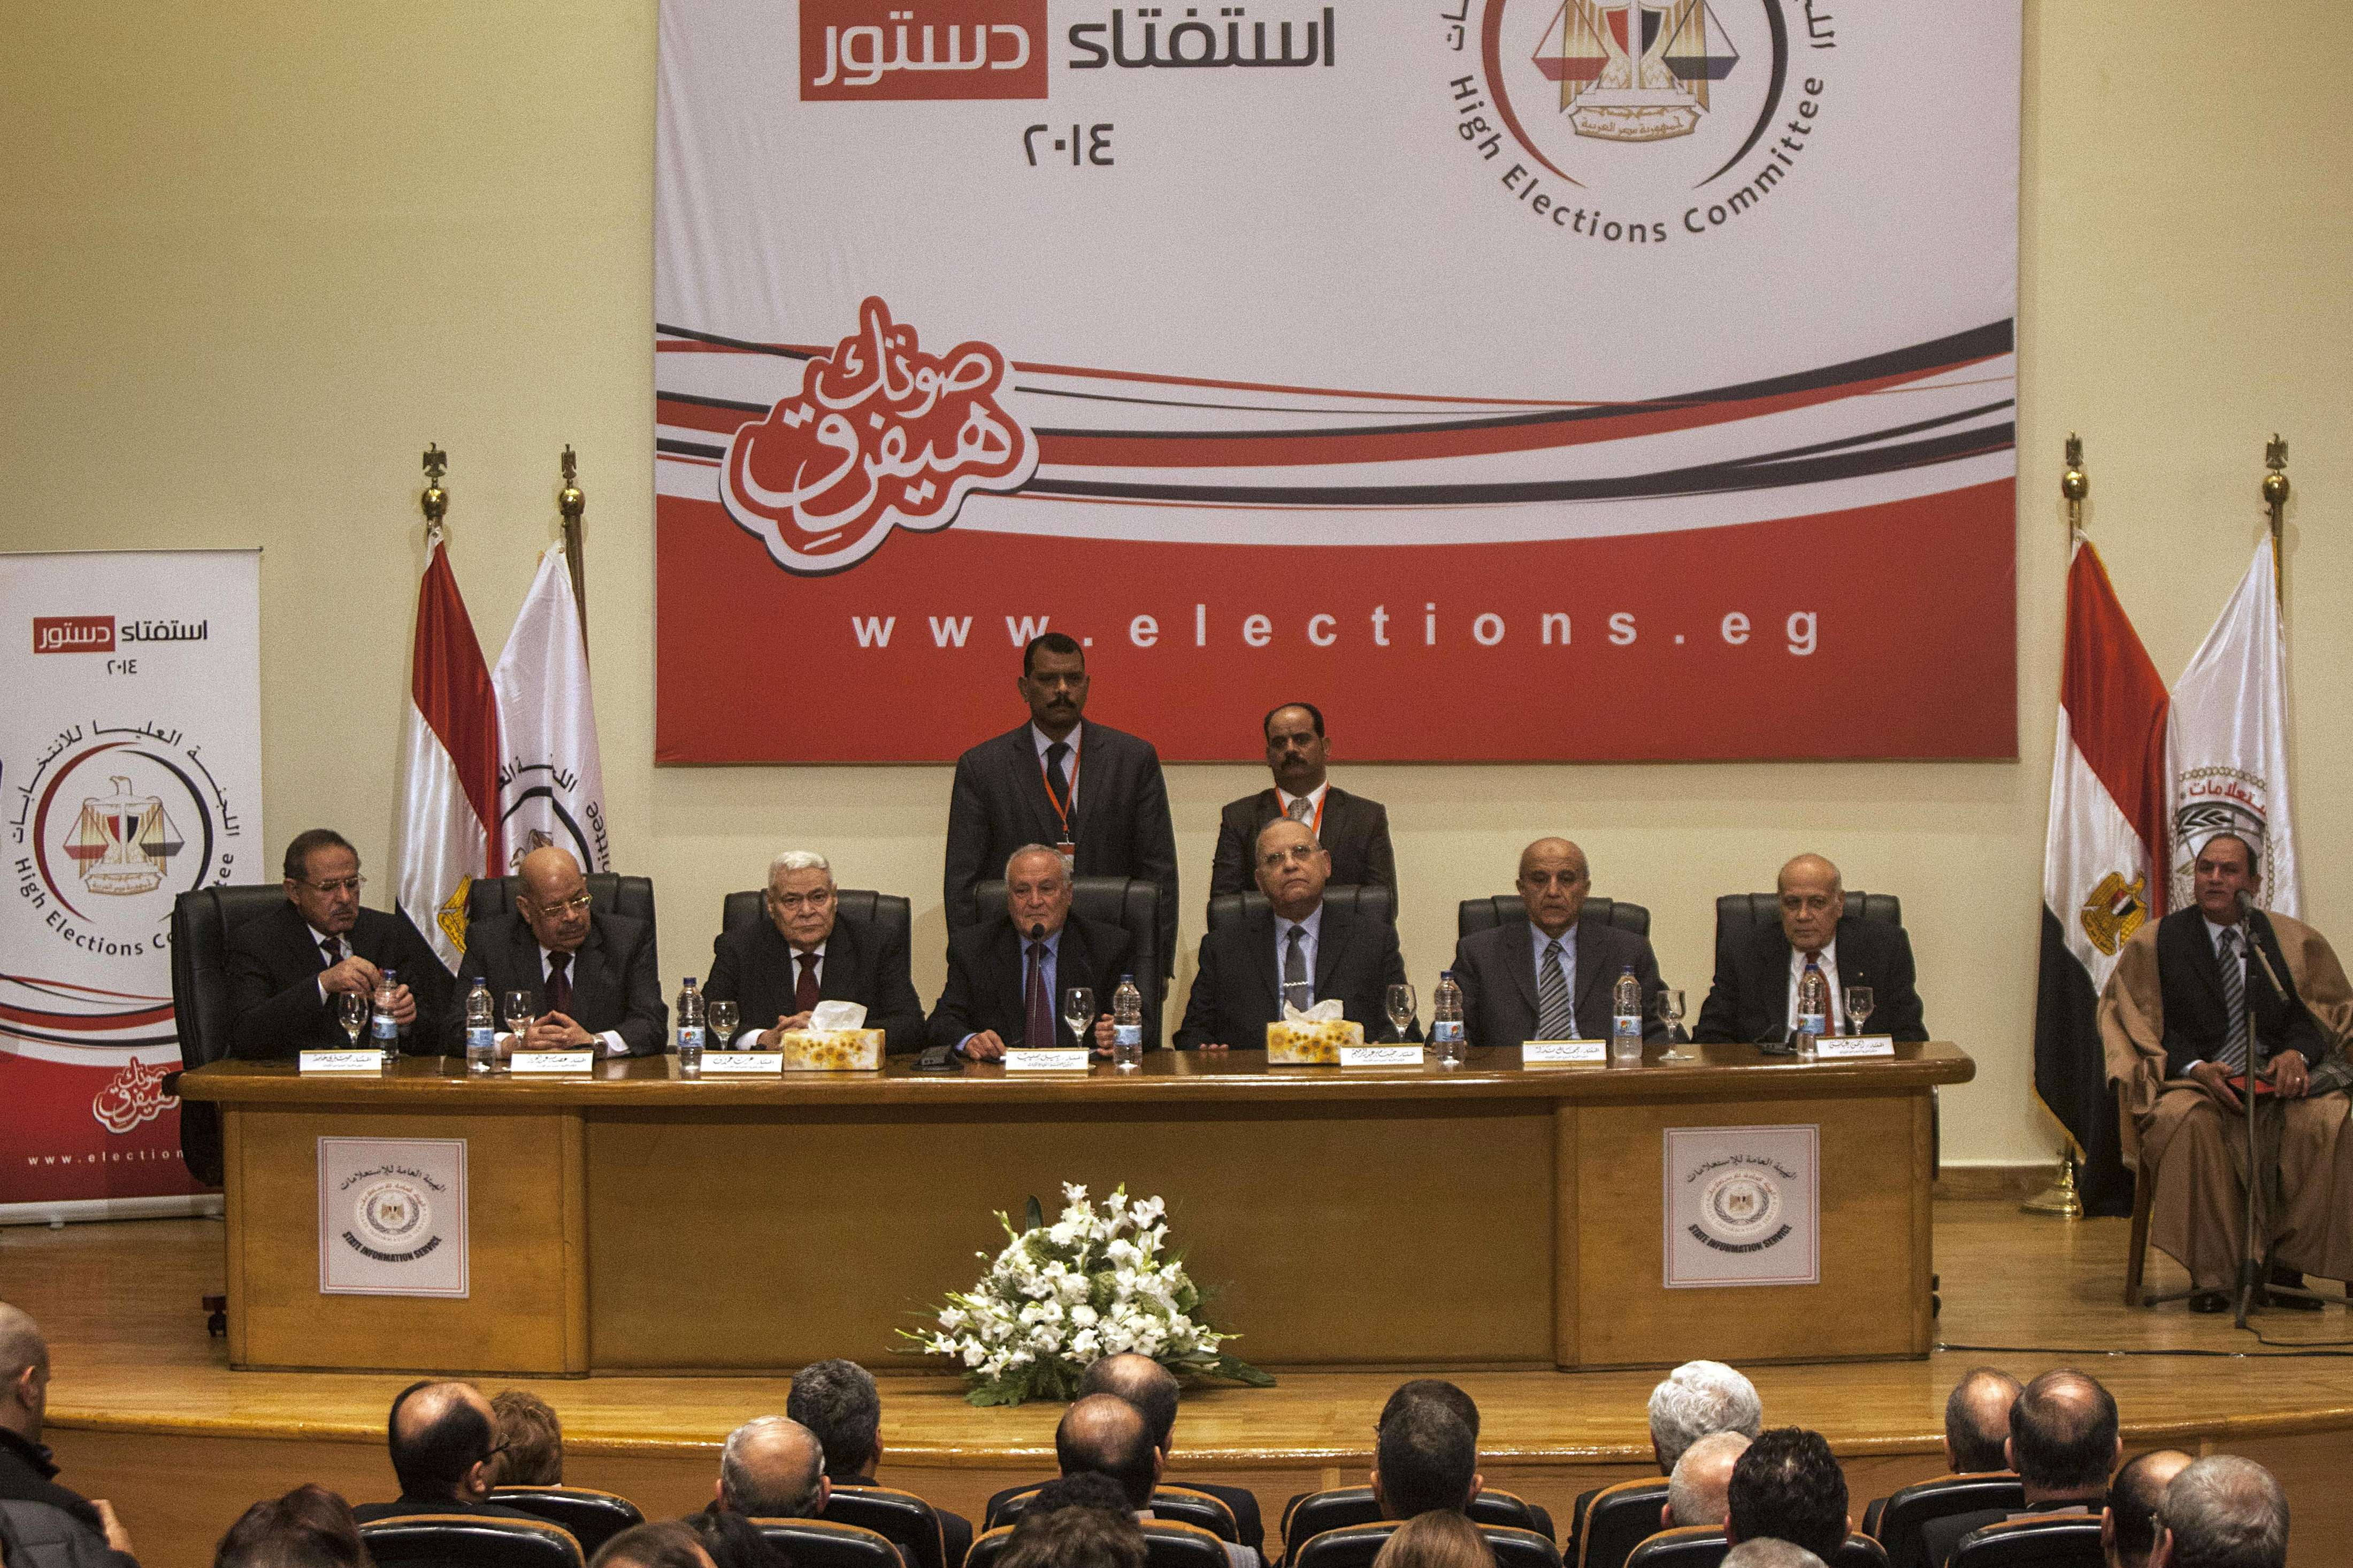 Head of Egypt's High Election Commission, Judge Nabil Salib (C) heads a press conference to announce the voting results of a referendum on January 18, 2014 in Cairo. Egyptian voters have approved a new constitution by 98.1 percent, Salib said, in what the government declared a popular endorsement of the army's overthrow of Islamist president Mohamed Morsi.      (AFP PHOTO MAHMOUD KHALED)